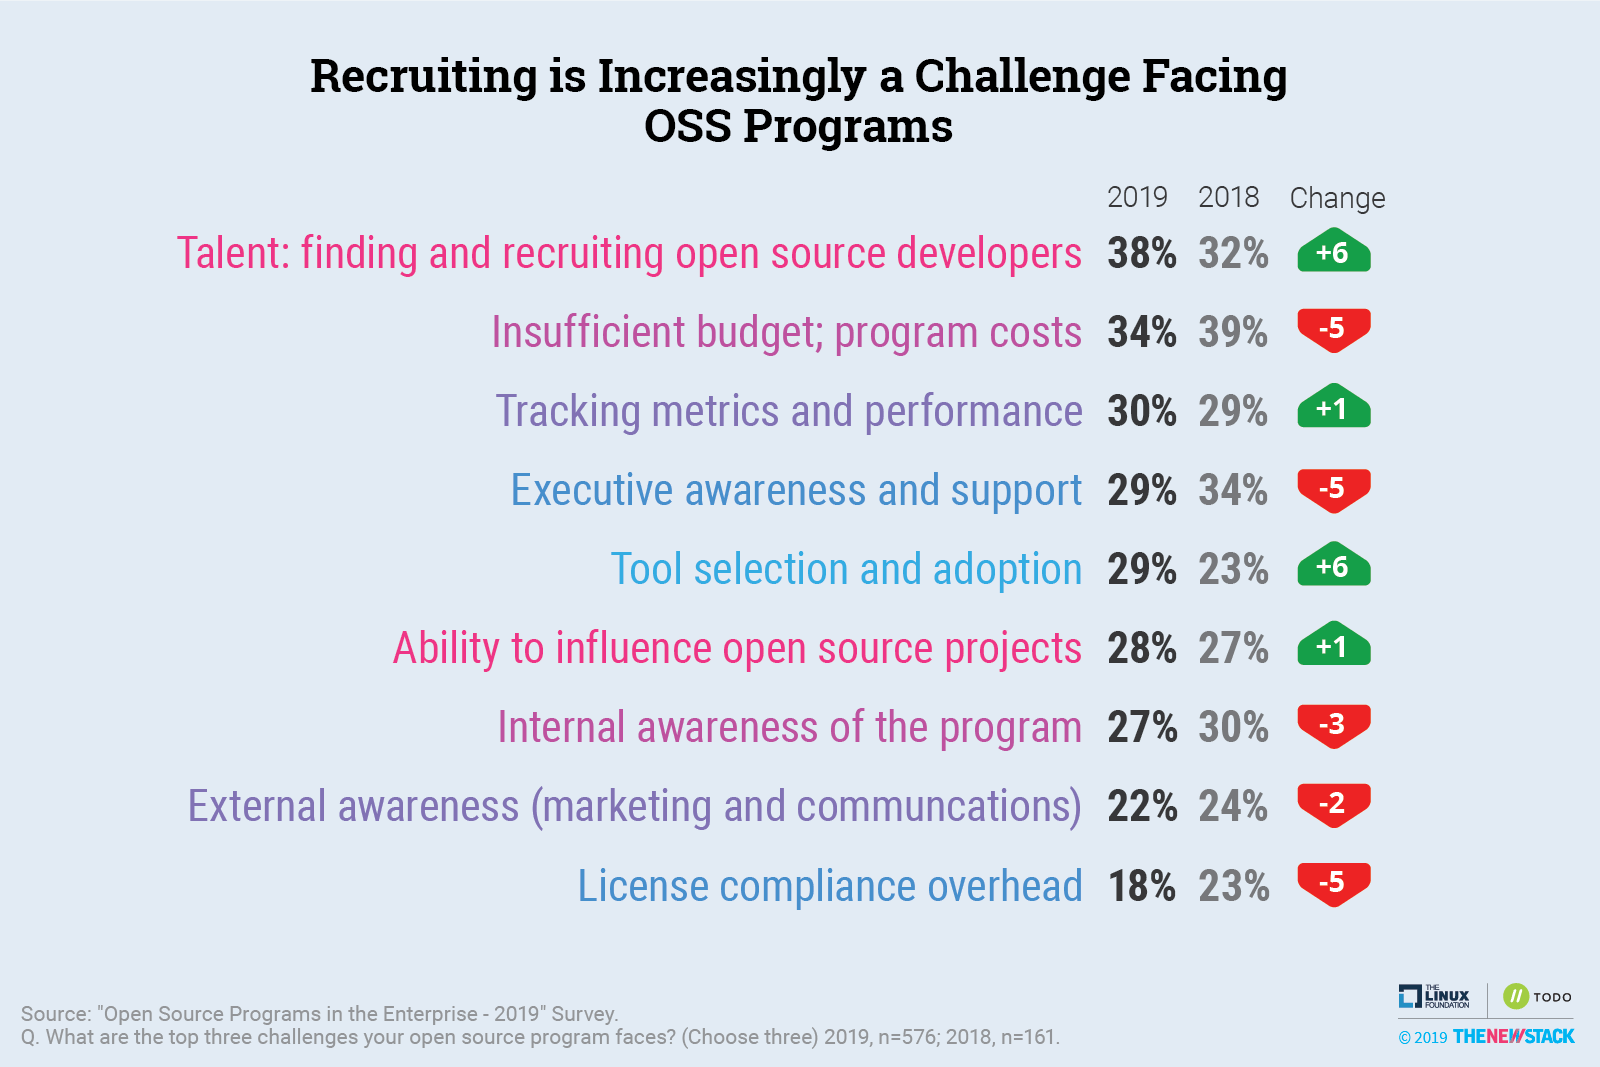 Recruiting is Increasingly a Challenge Facing OSS Programs